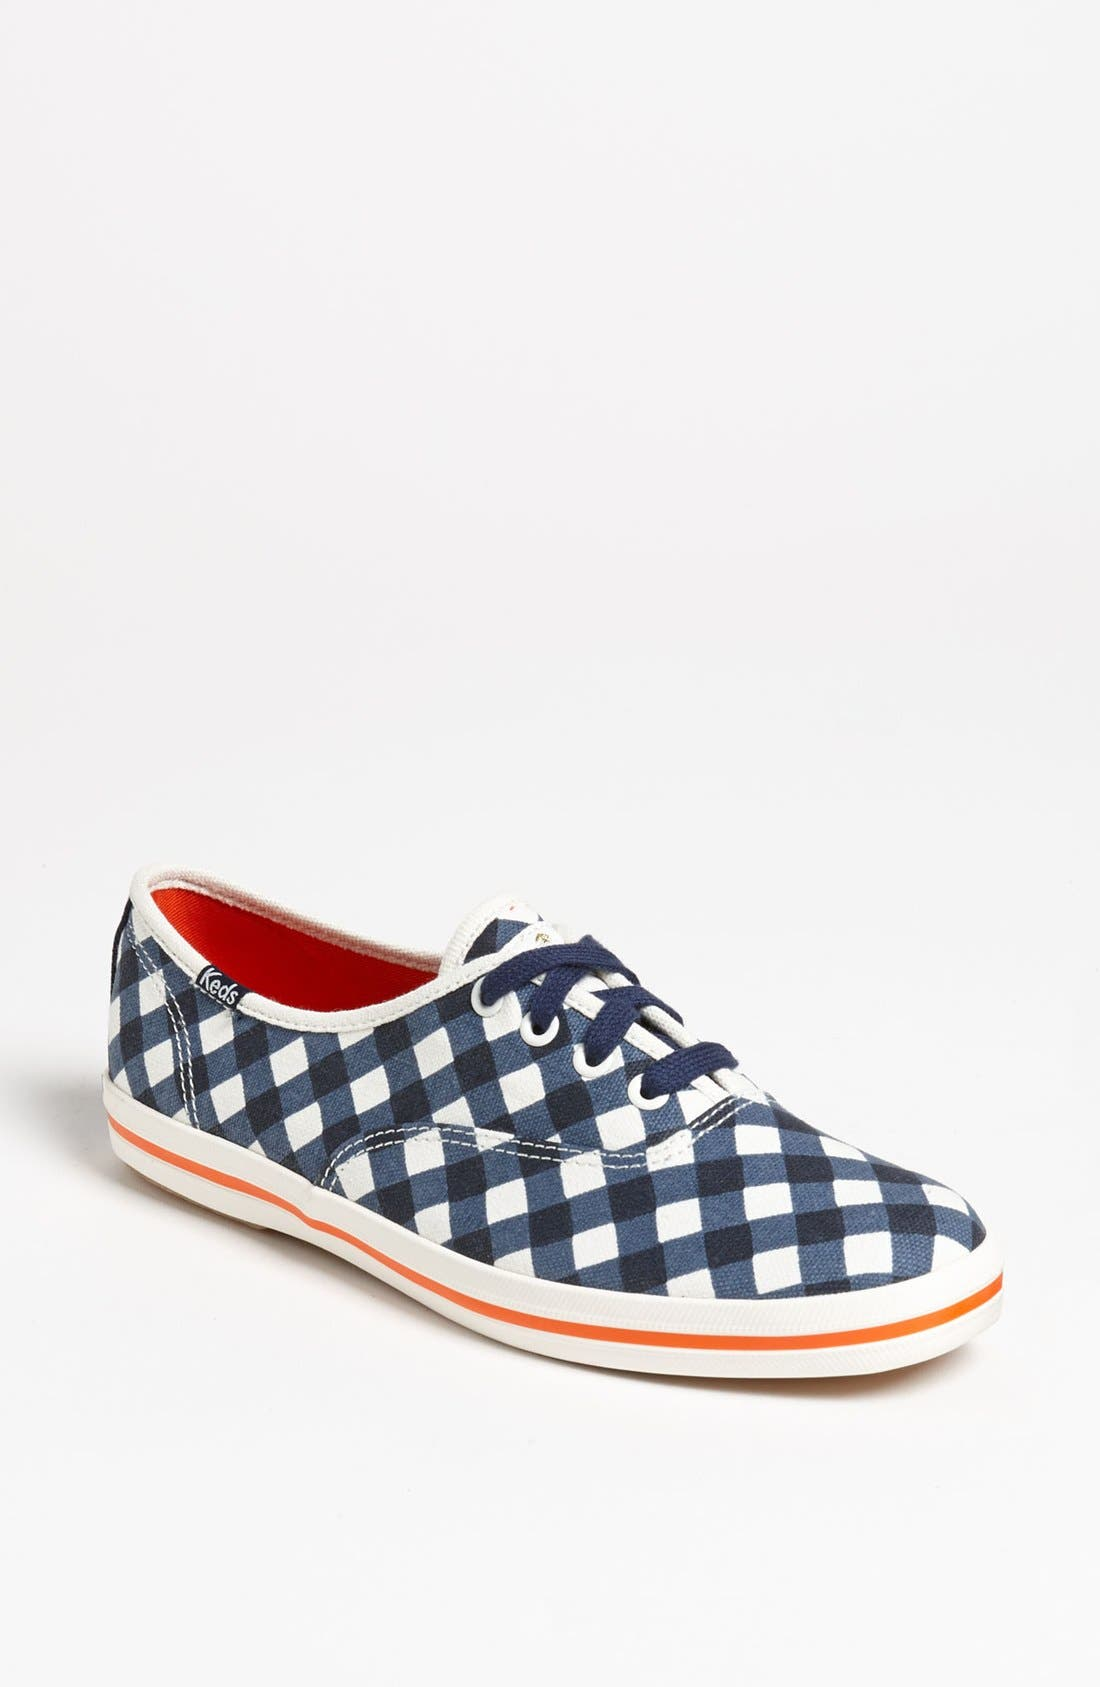 Main Image - Keds® for kate spade new york 'kick' sneaker